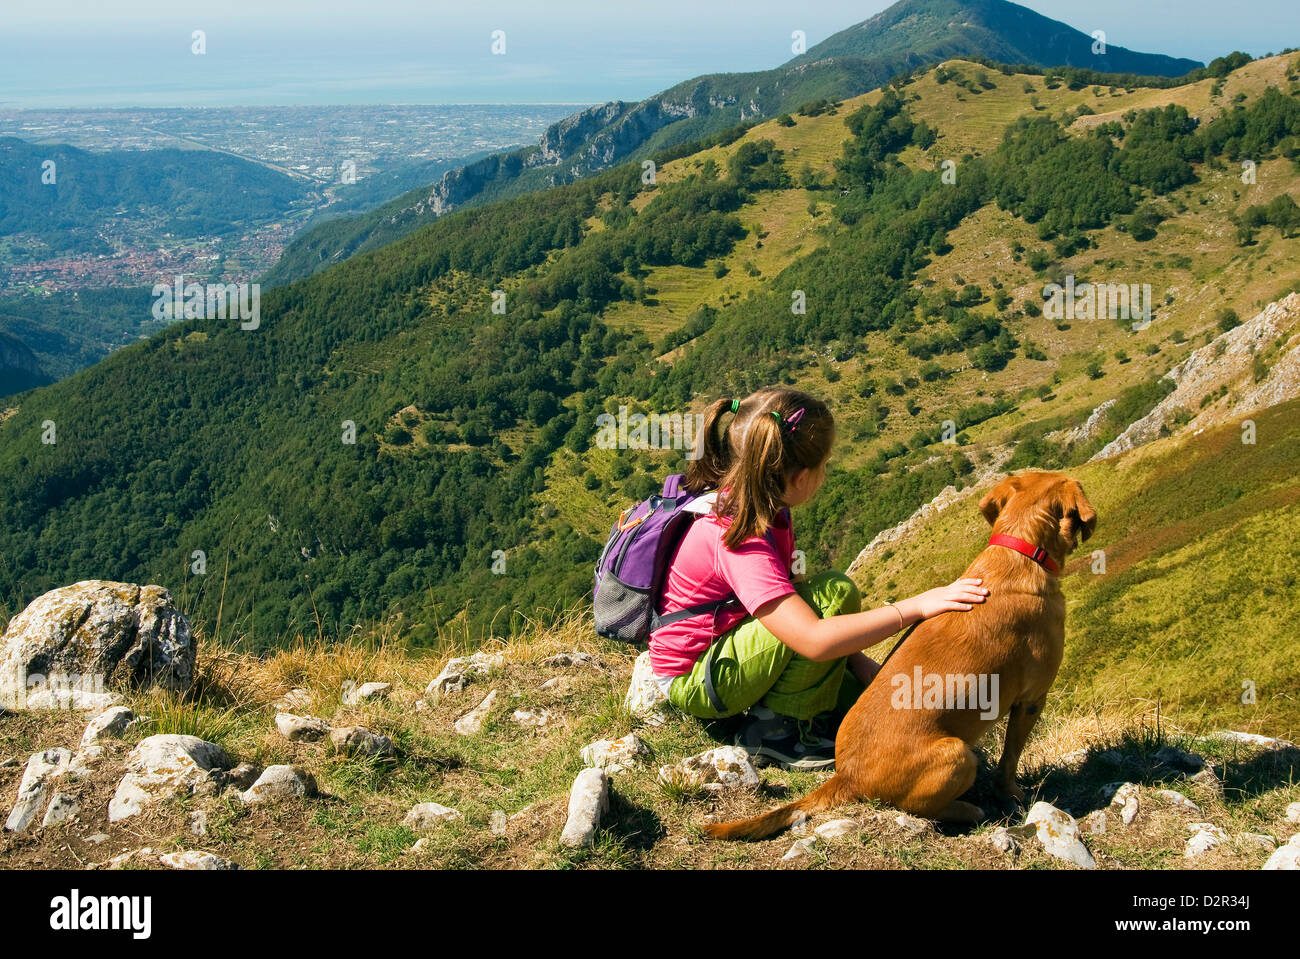 Girl and dog, looking at view of Camaiore and Tyrrhenian Sea from Apuan Alps (Alpi Apuane), Lucca Province, Tuscany, - Stock Image